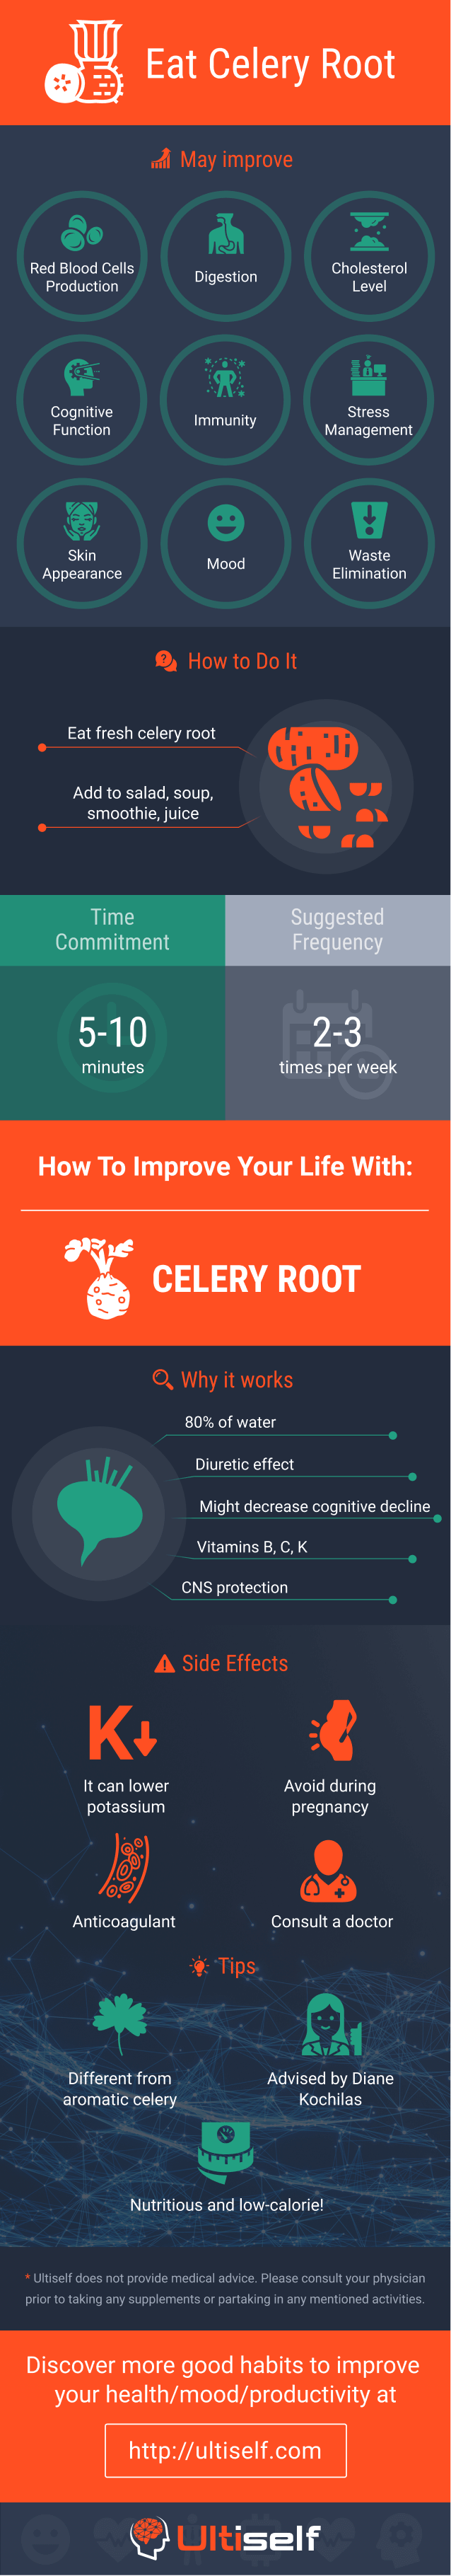 Eat Celery Root infographic